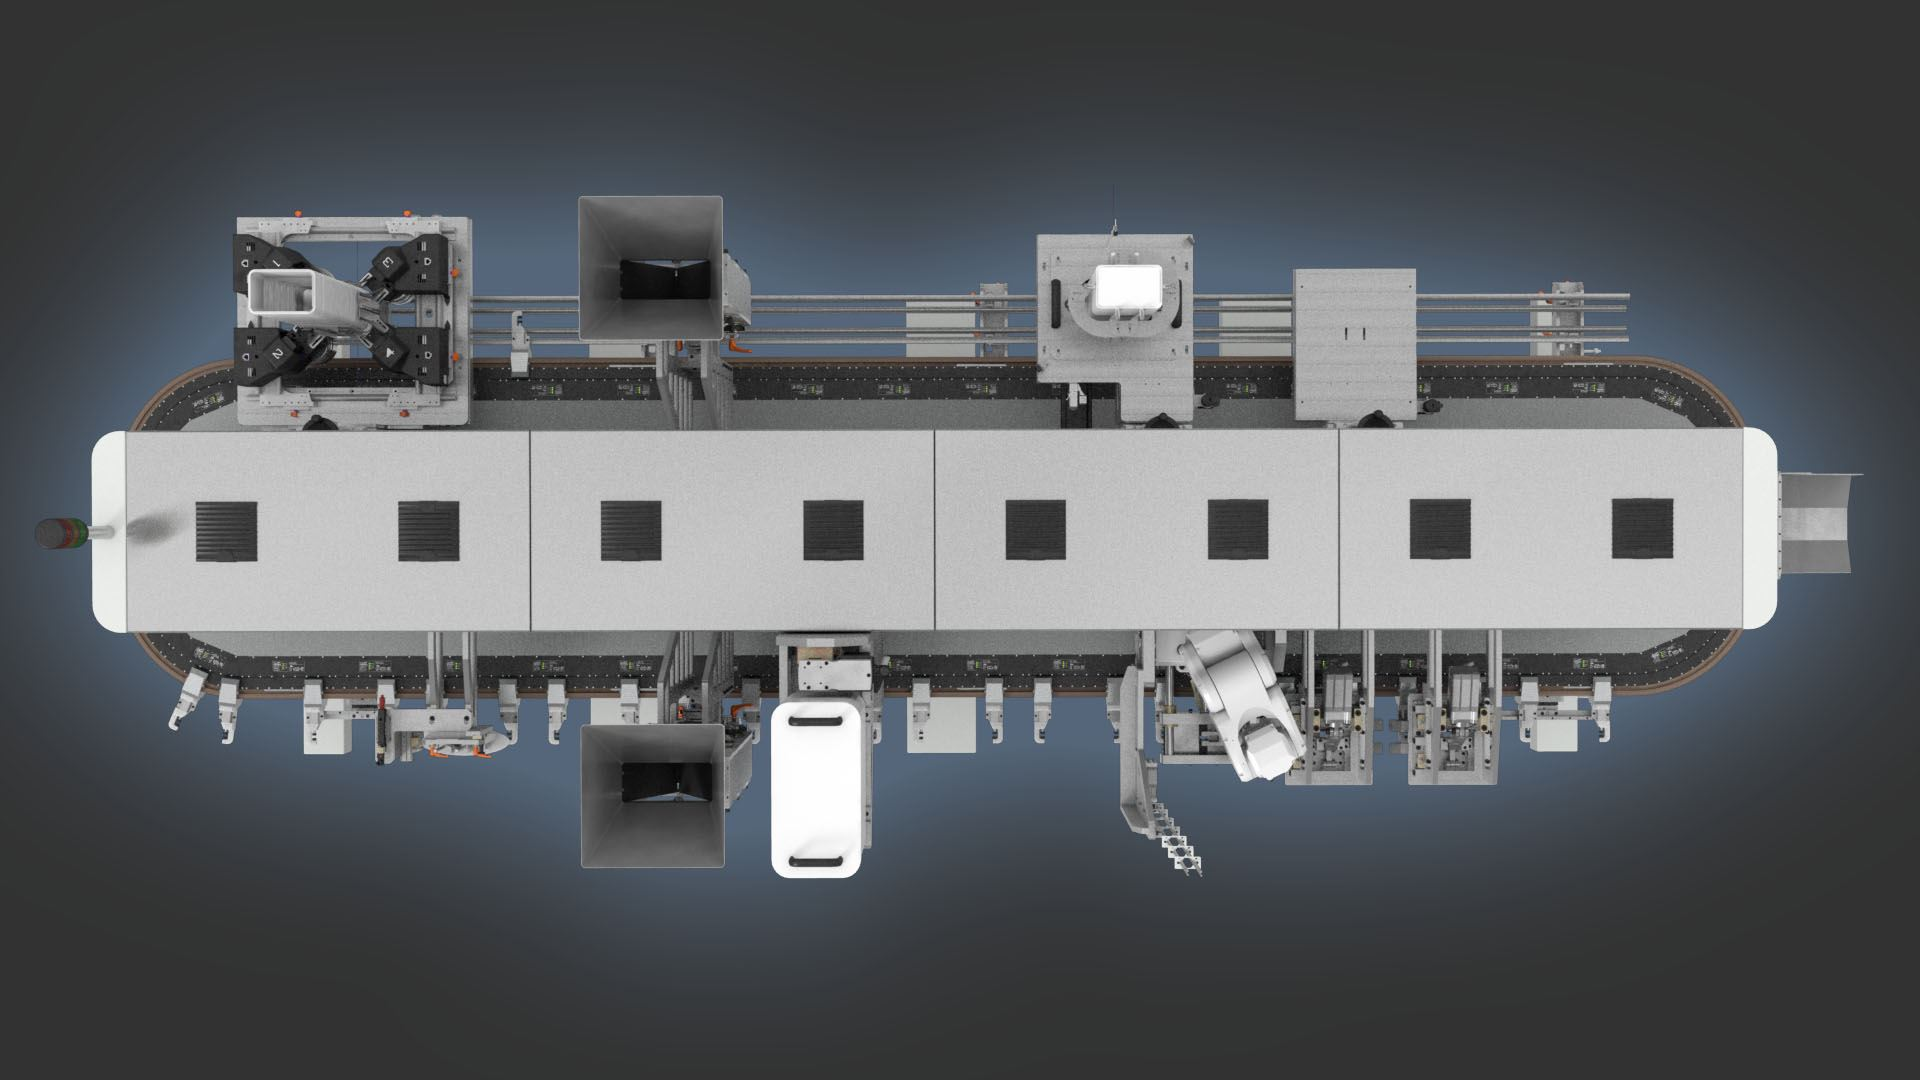 Topview of Doysis with four module base. Flexible packaging solutions.